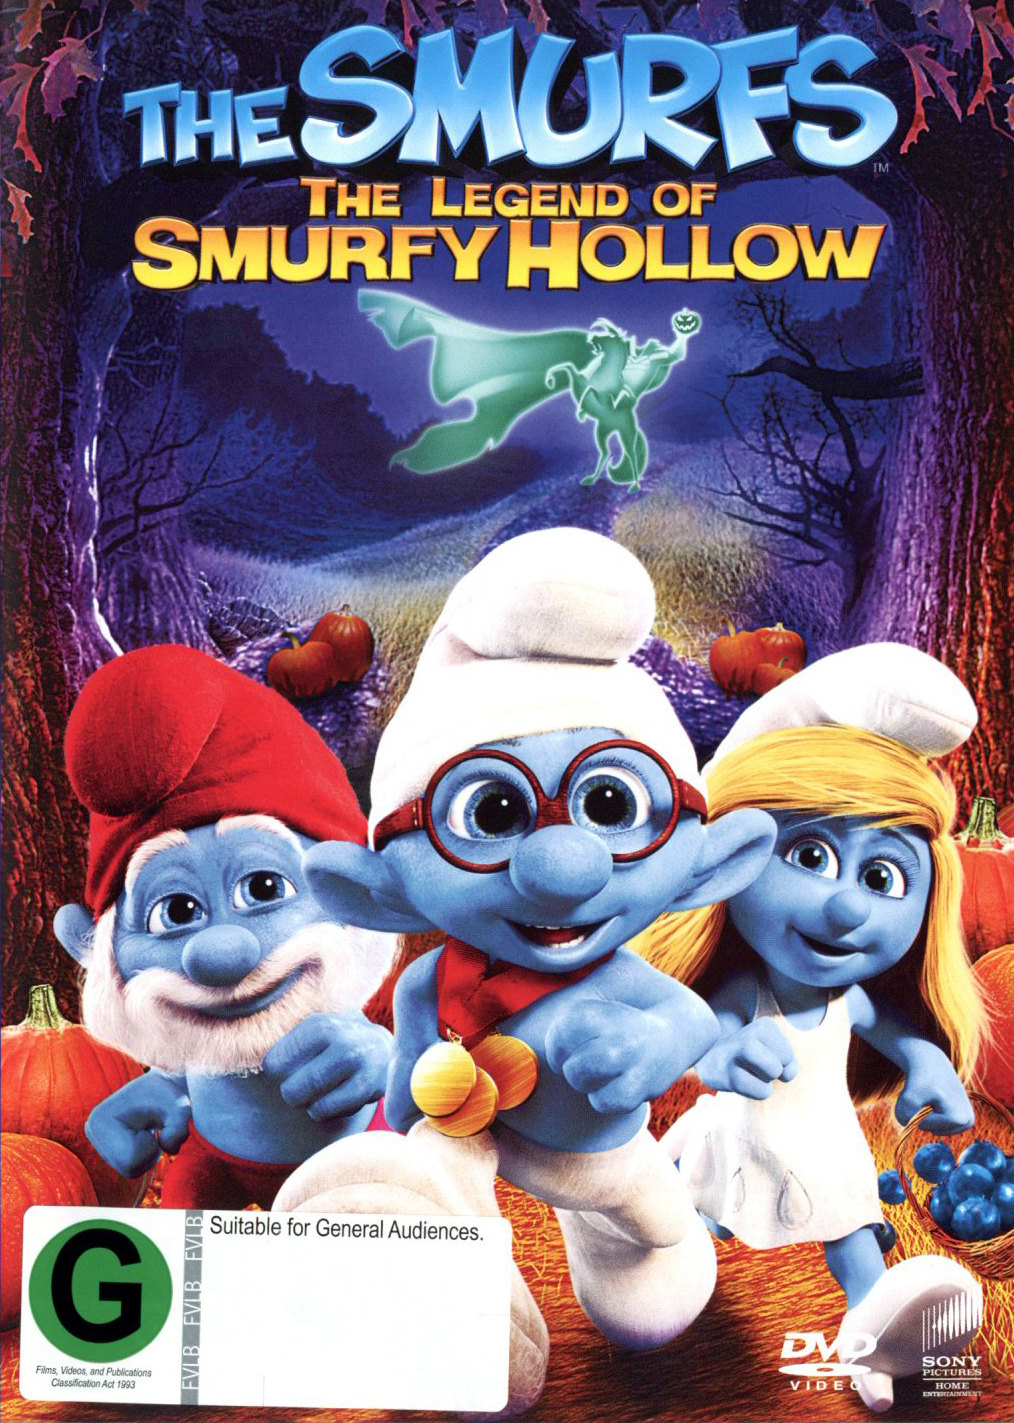 The Smurfs: The Legend of Smurfy Hollow on DVD image